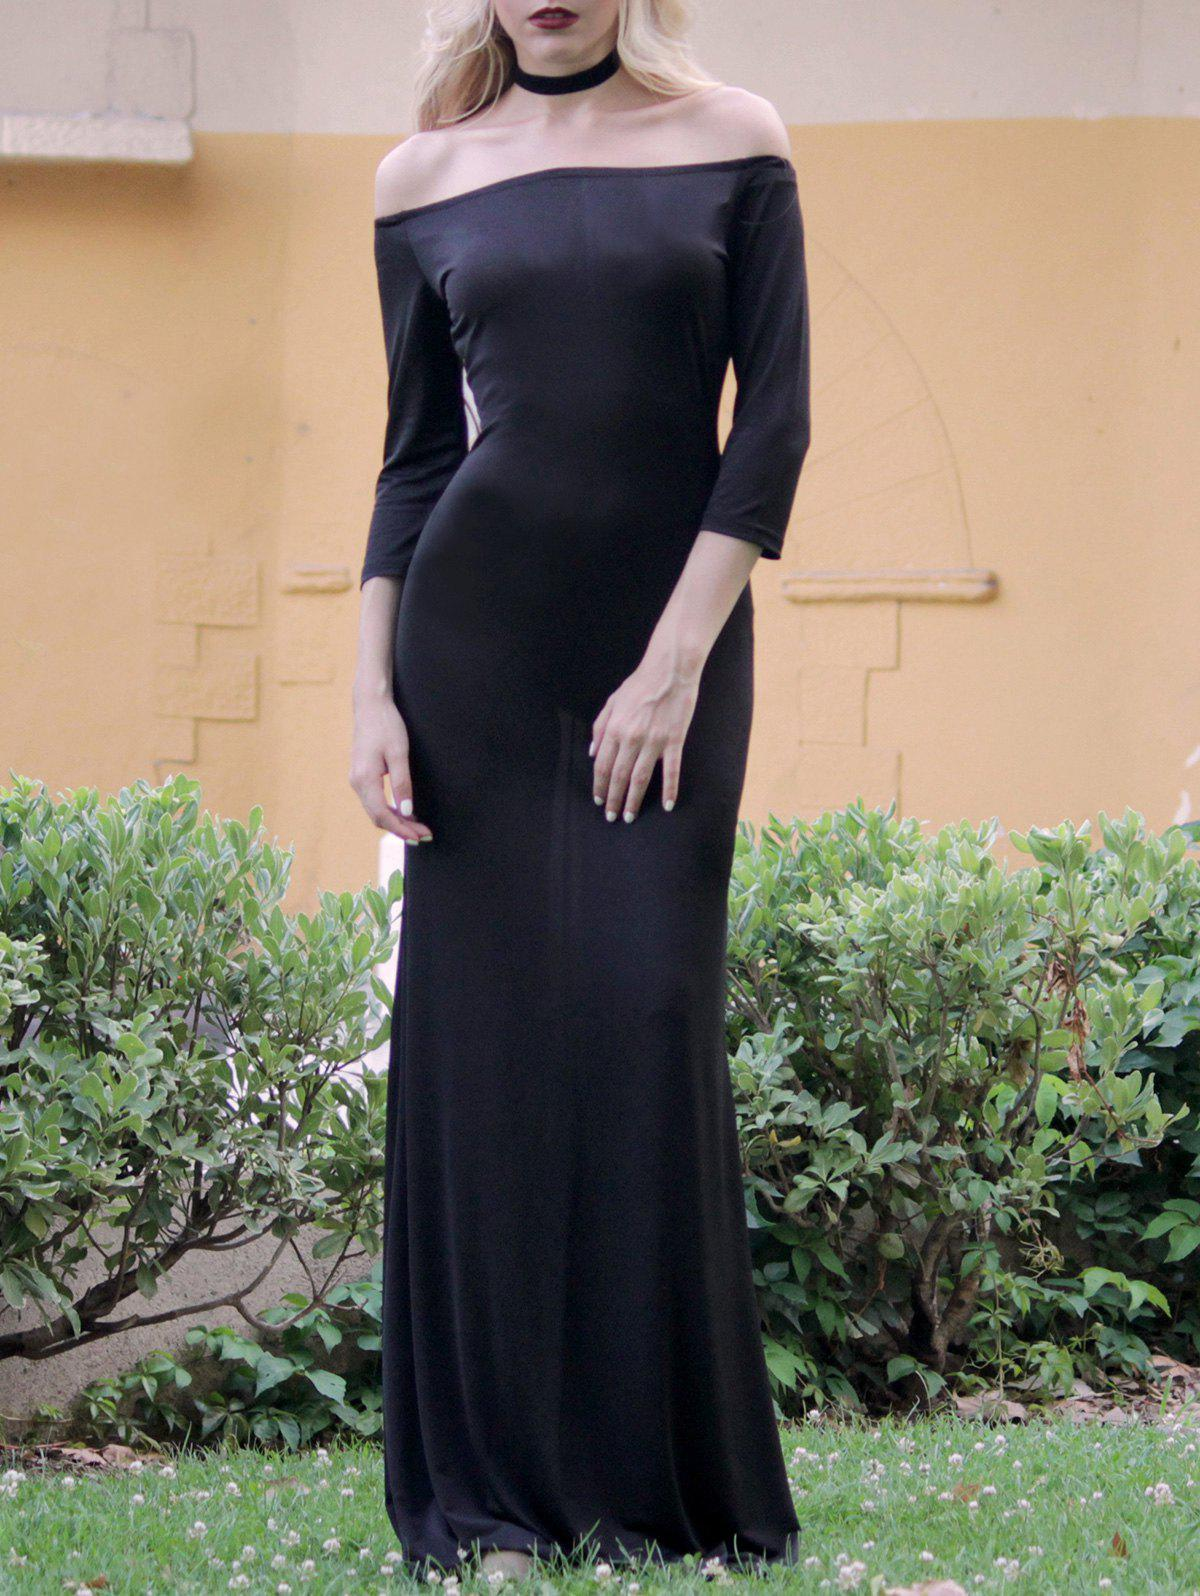 Stylish 3/4 Sleeve Off-The-Shoulder Pure Color Women's Maxi Dress - BLACK S